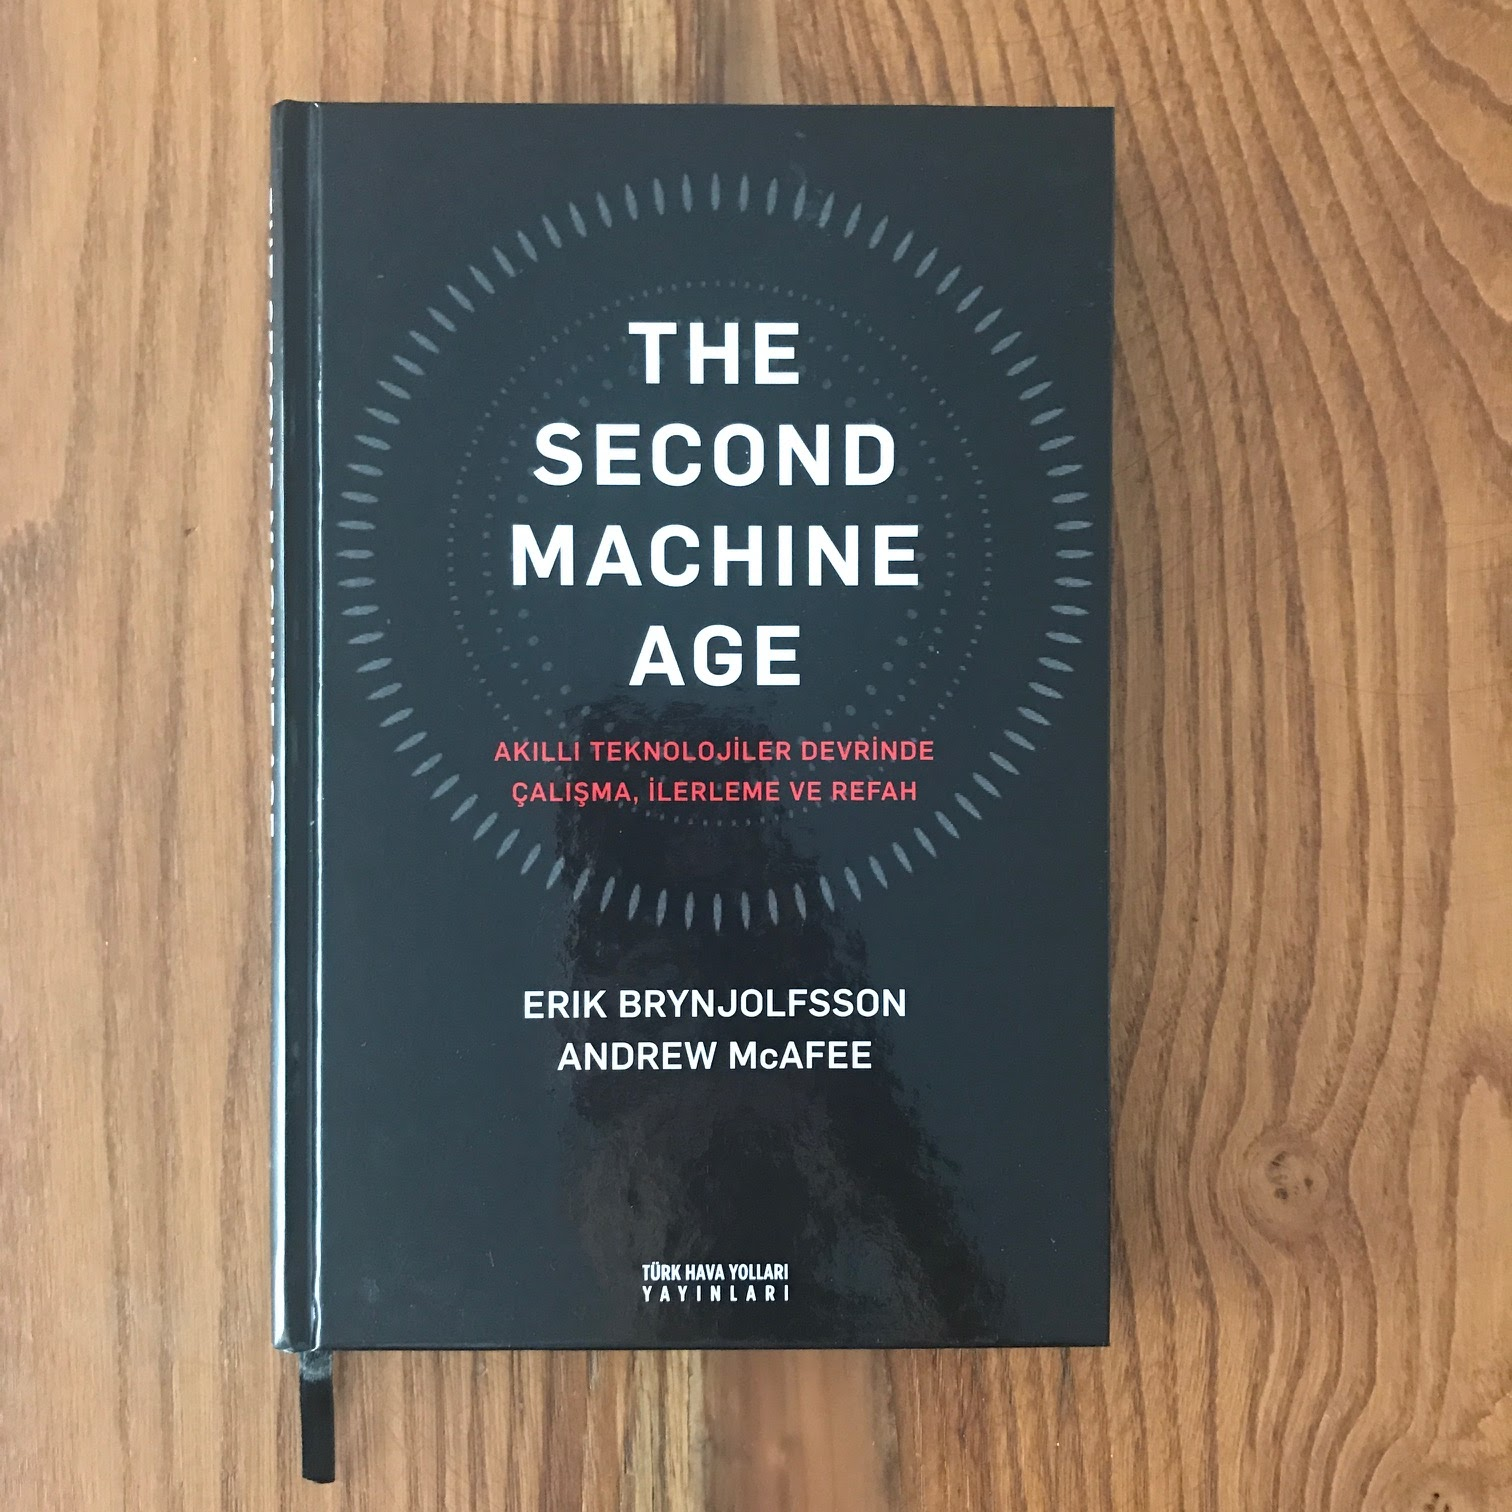 The Second Machine Age - Akilli Teknolojiler Devrinde Calisma, Ilerleme ve Refah (Kitap)